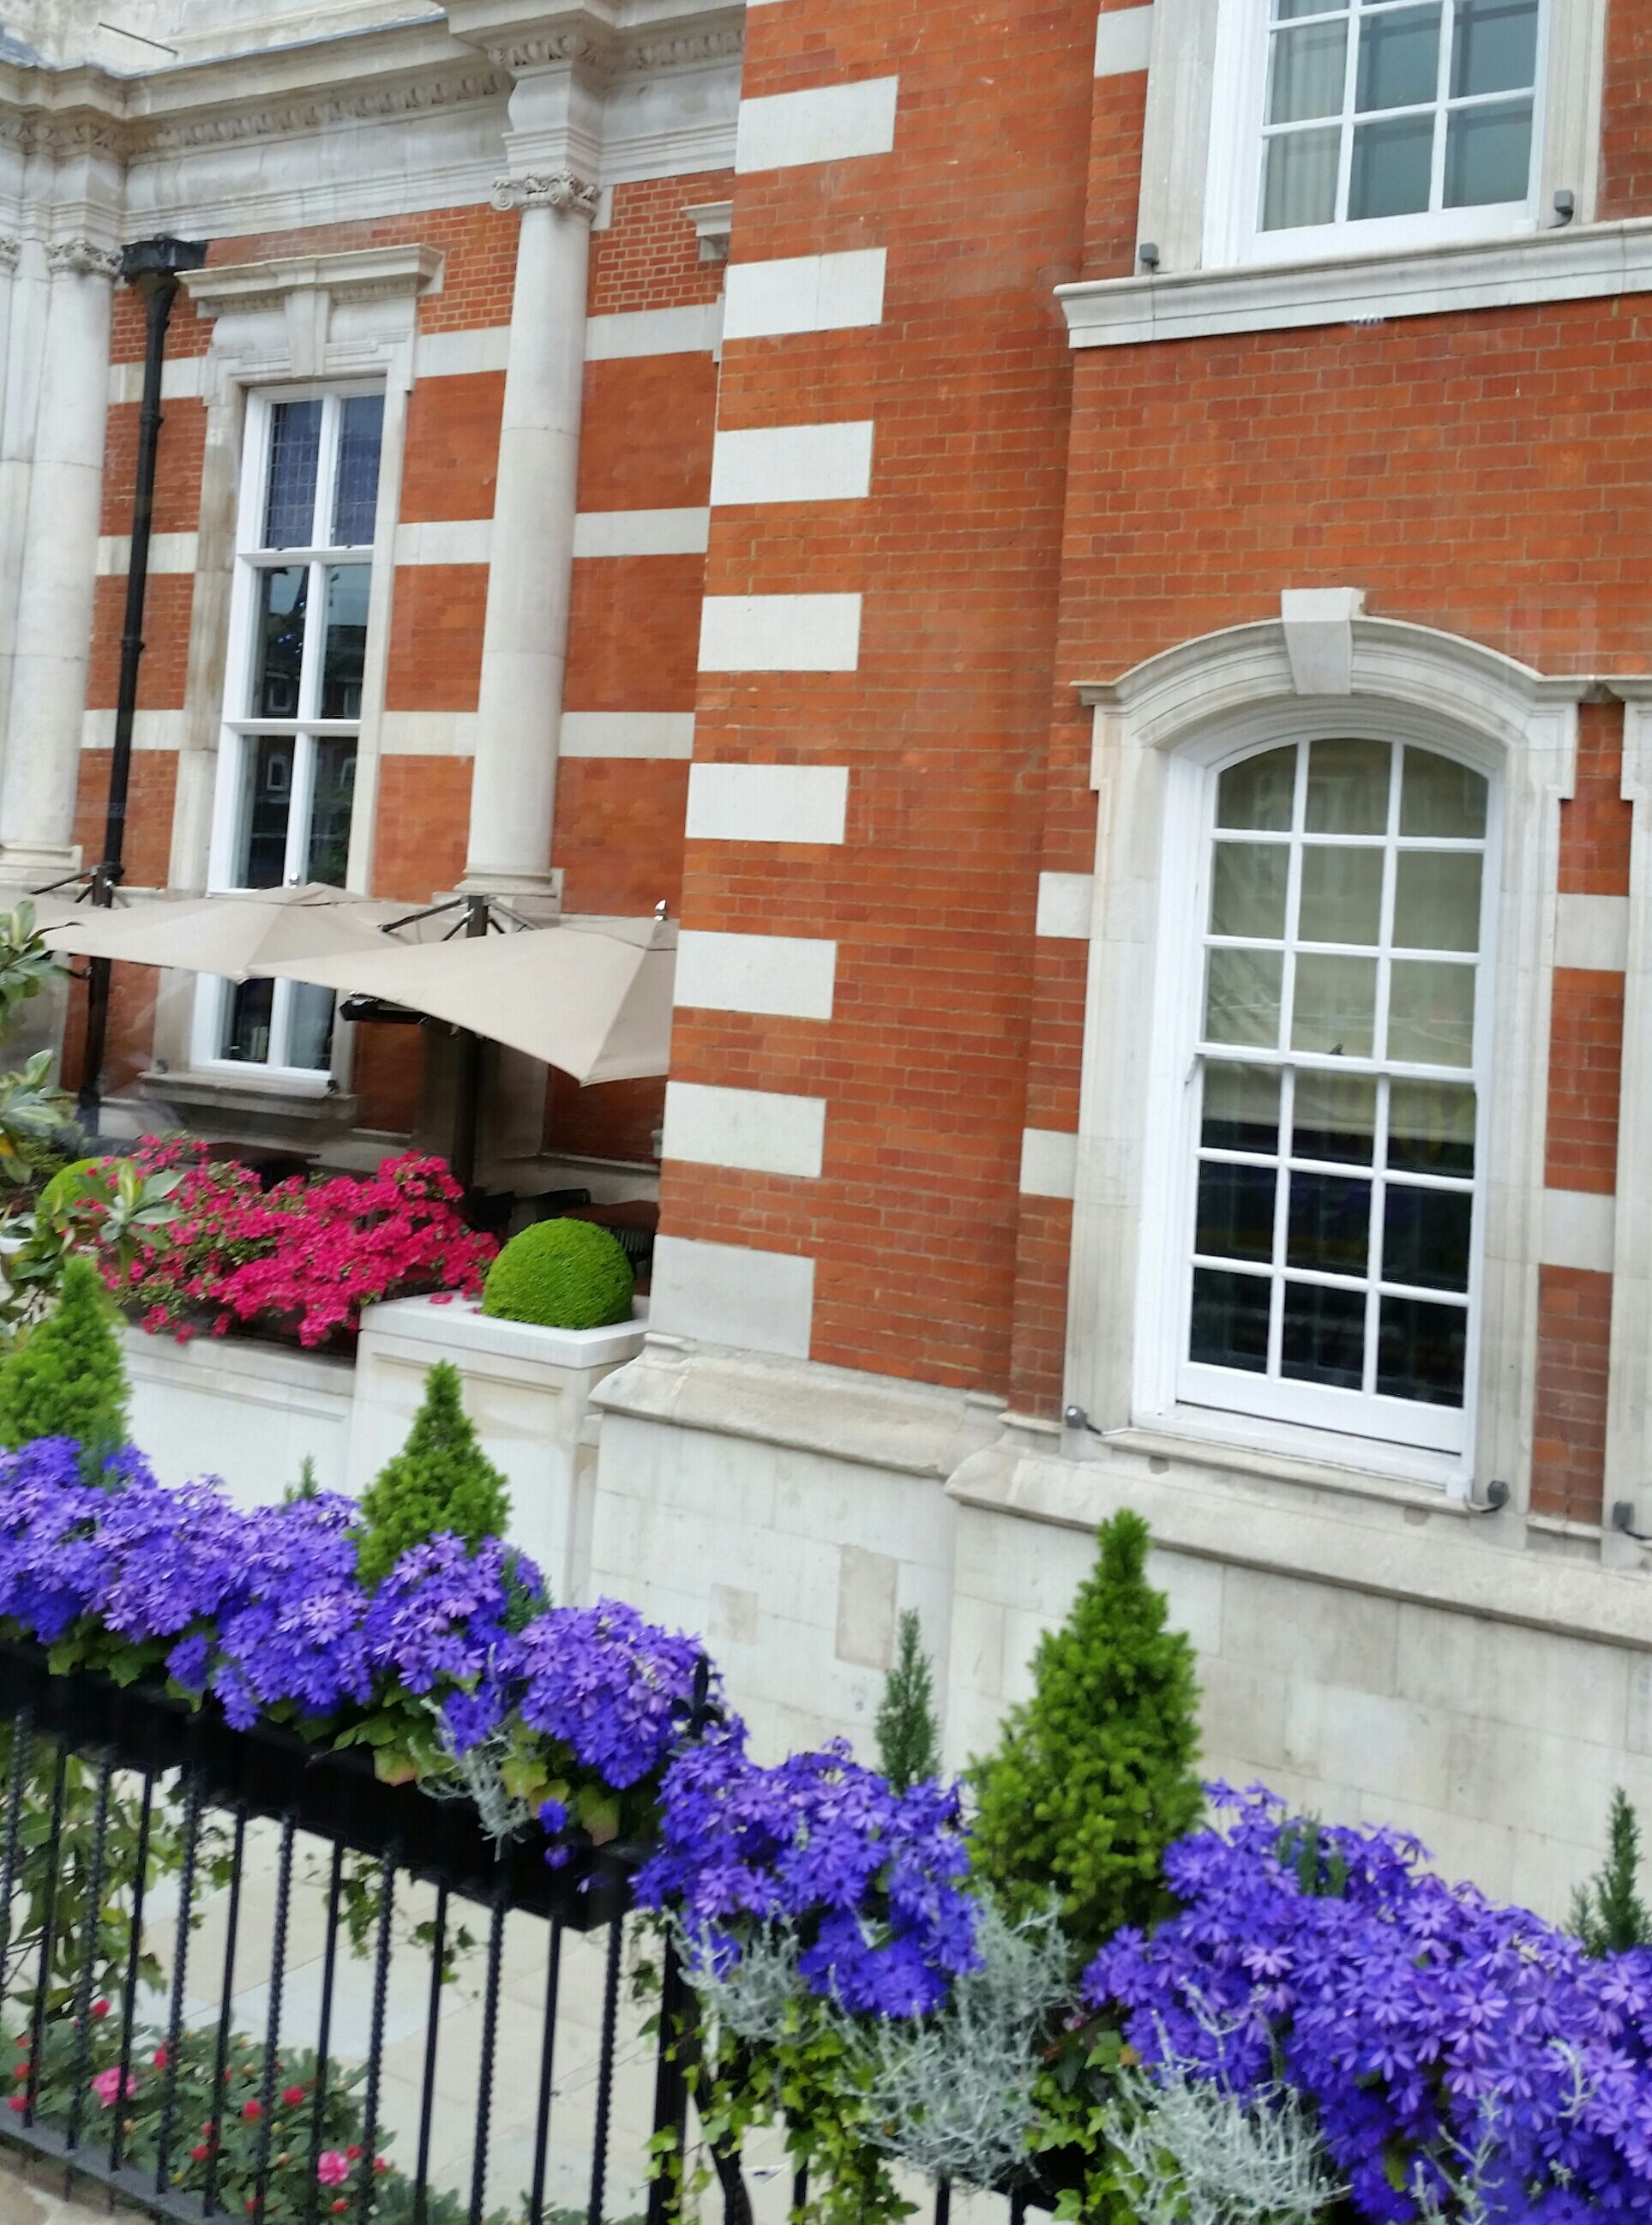 Window boxes on railings outside London residence